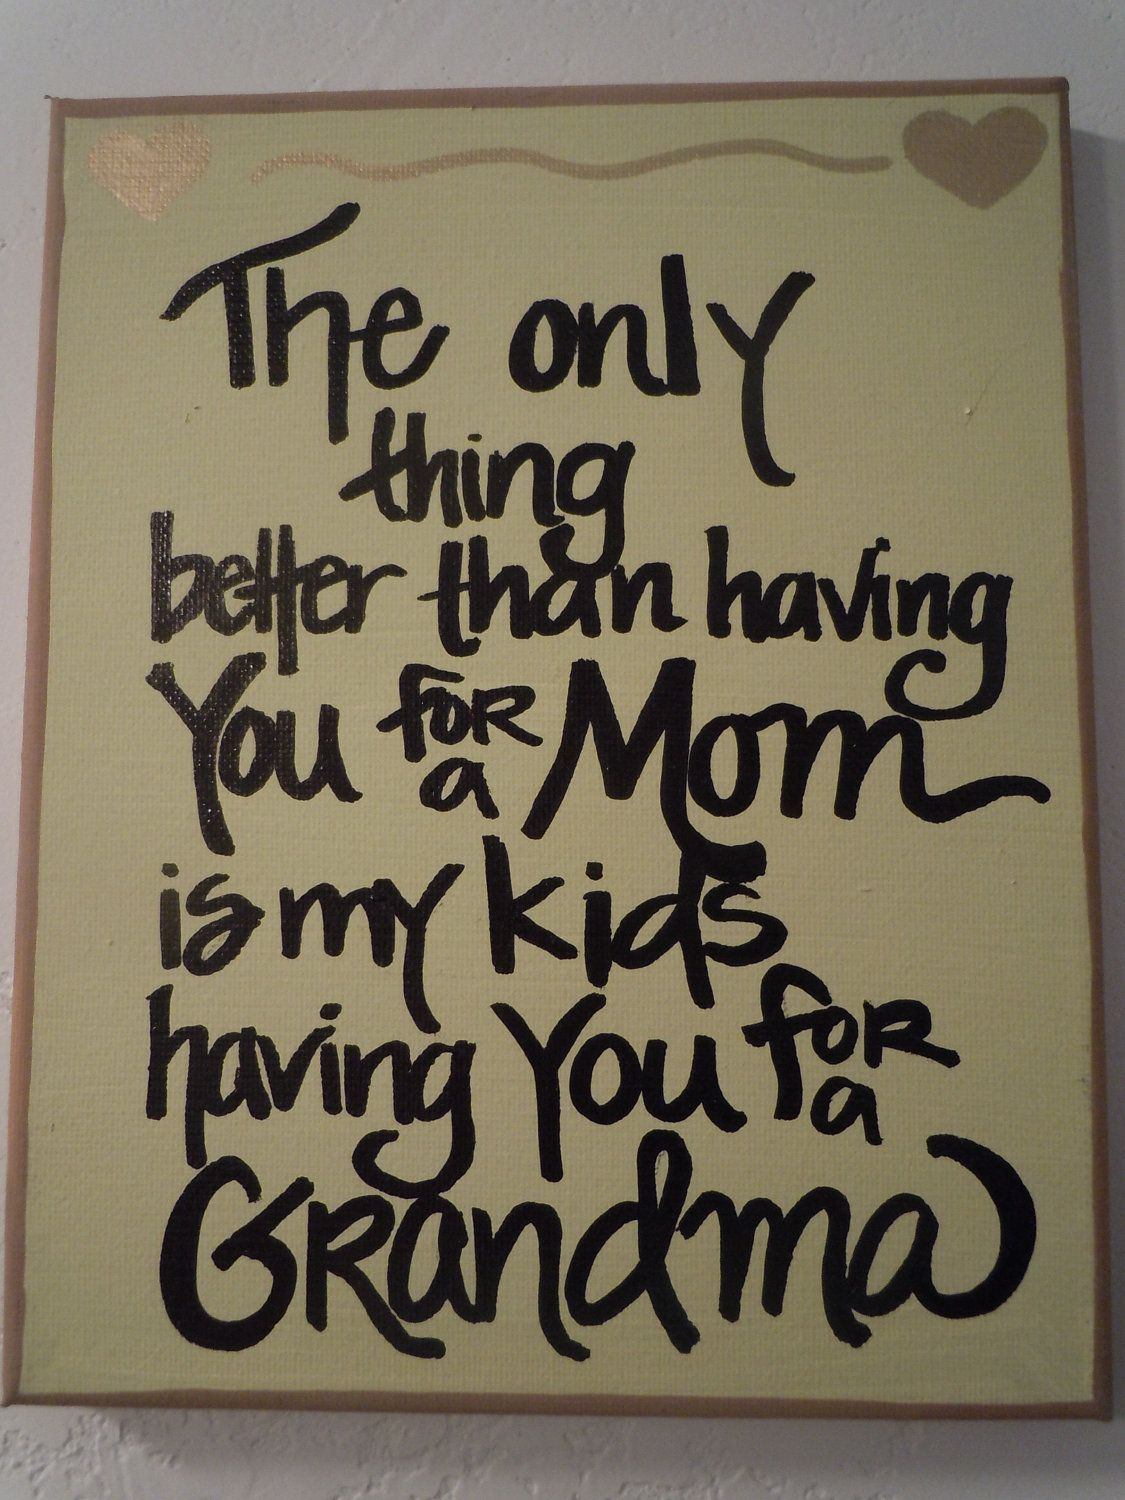 Handpainted 8x10 canvas for Mom or Grandma by